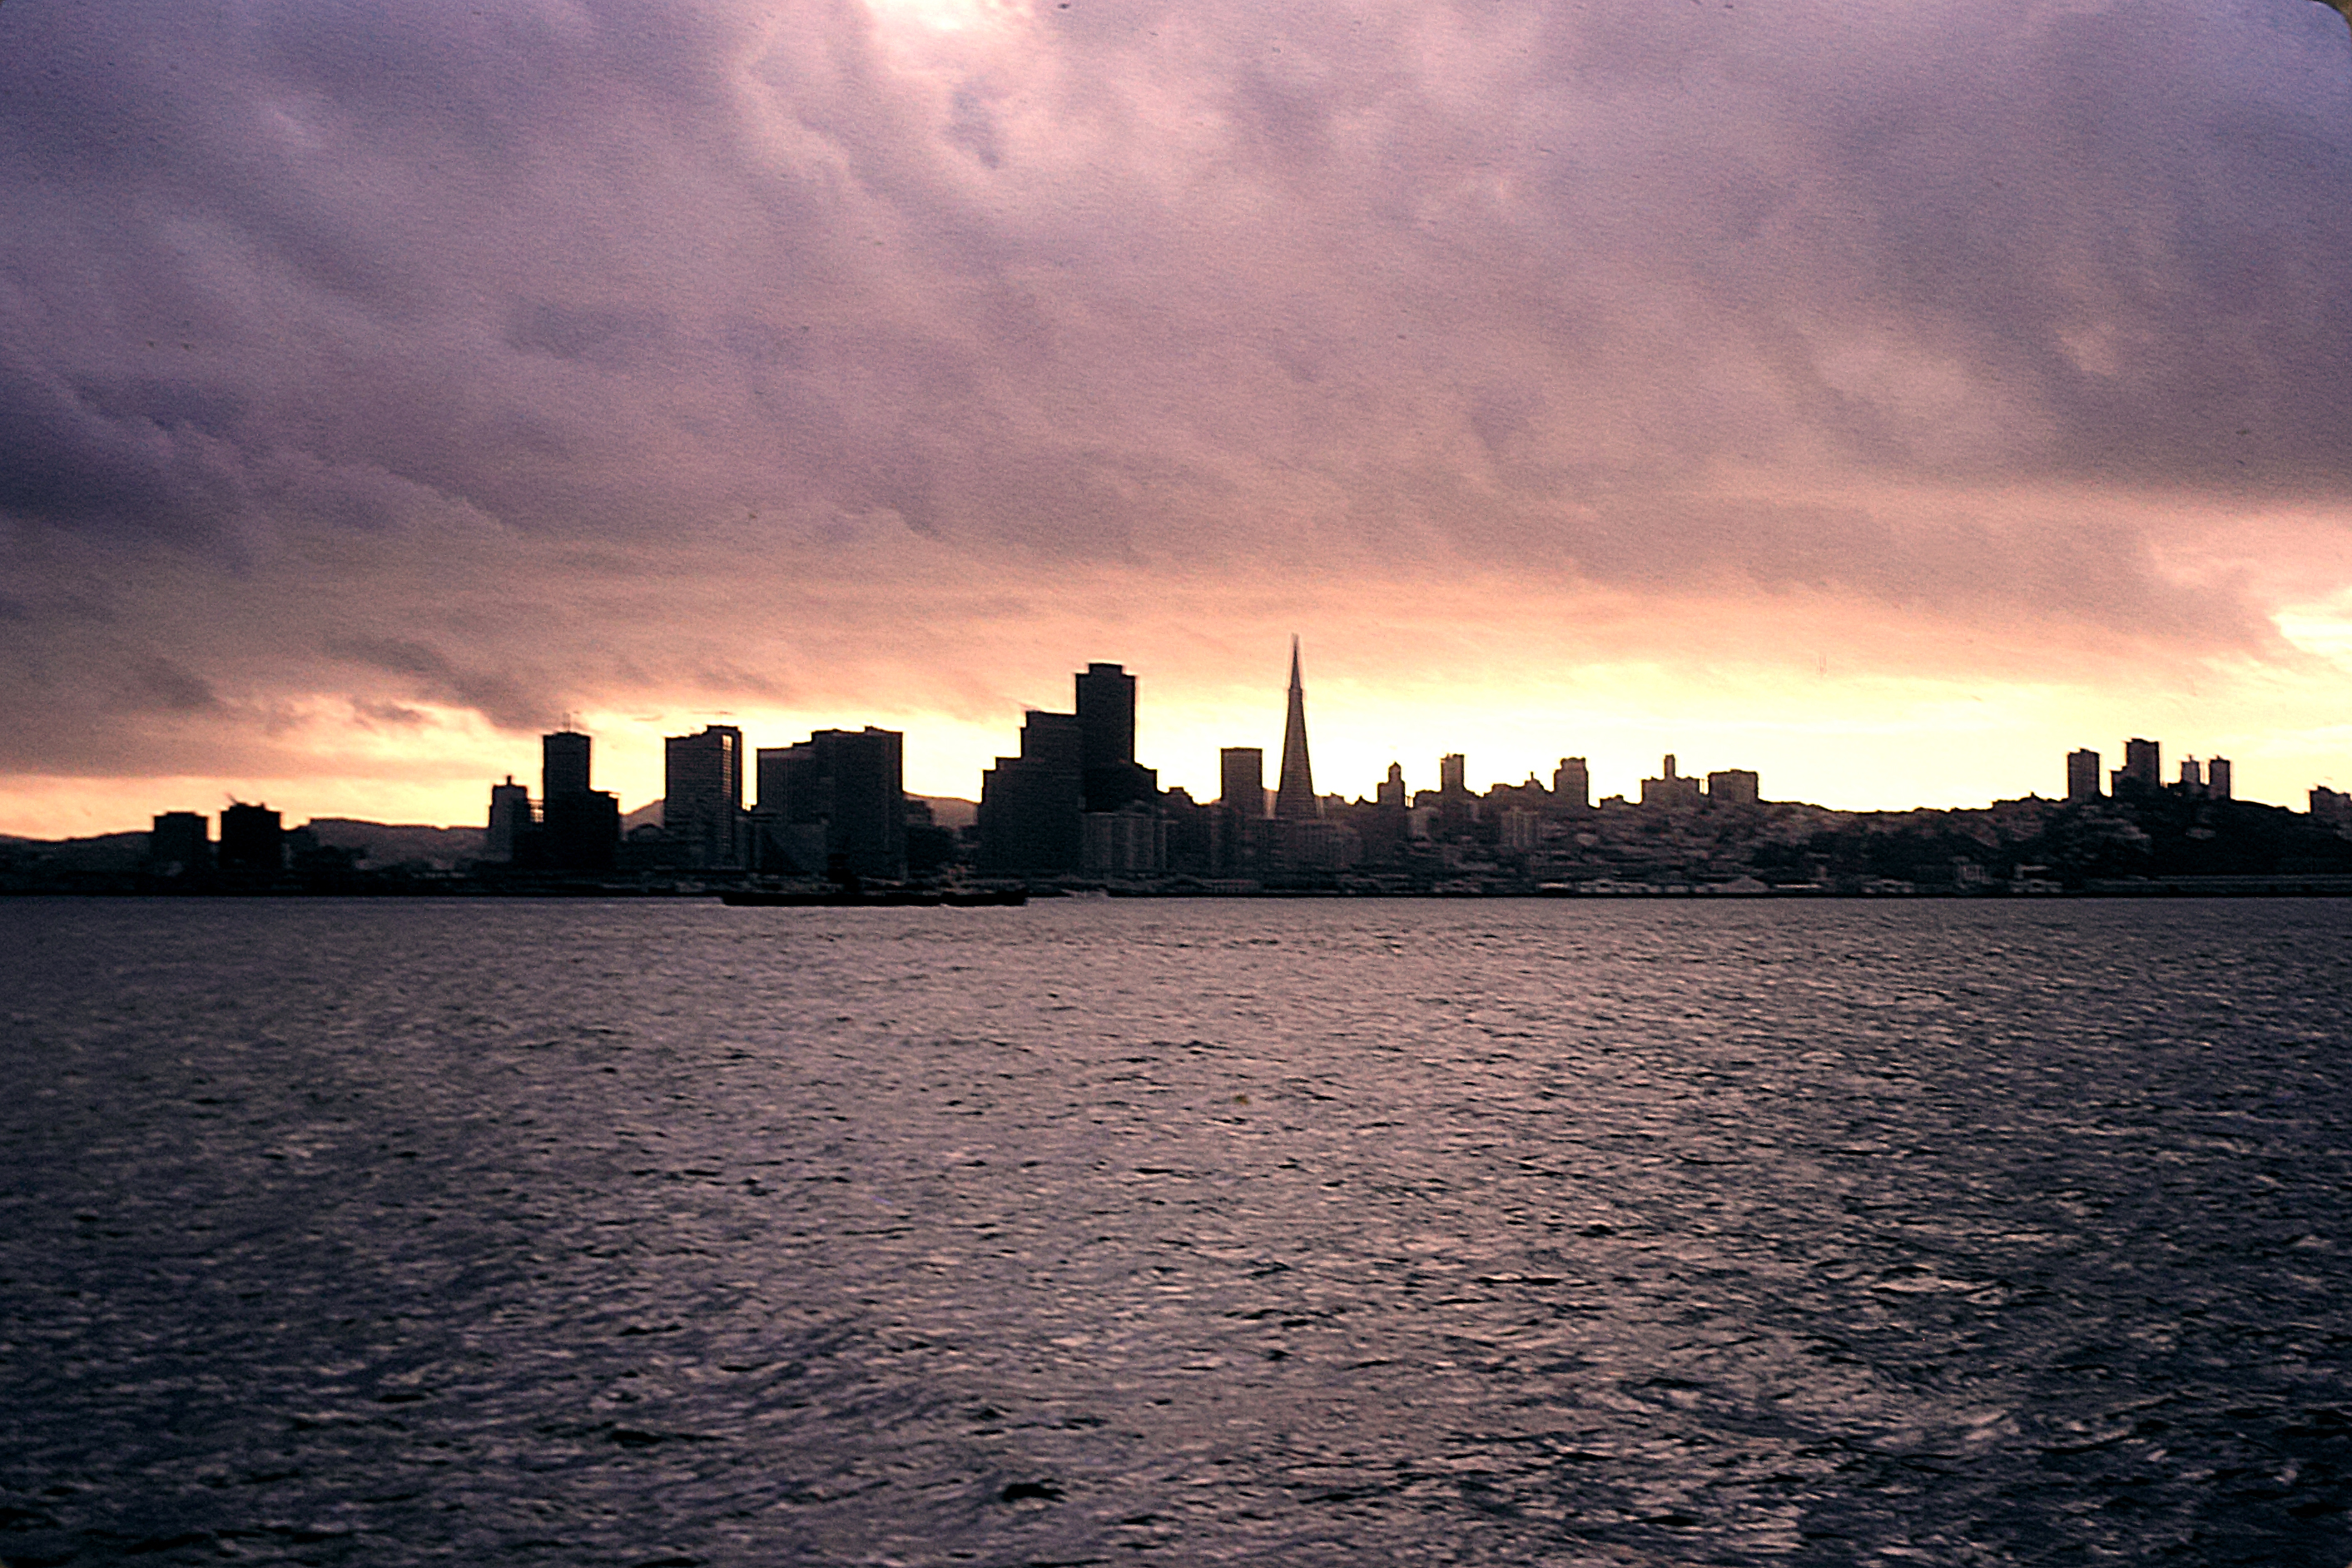 """Figure 3 - """"San Francisco from the Sausilito Ferry, 1975,"""" Digitized 35 mm Kodachrome Transparency."""" (c) DE Wolf 2013."""